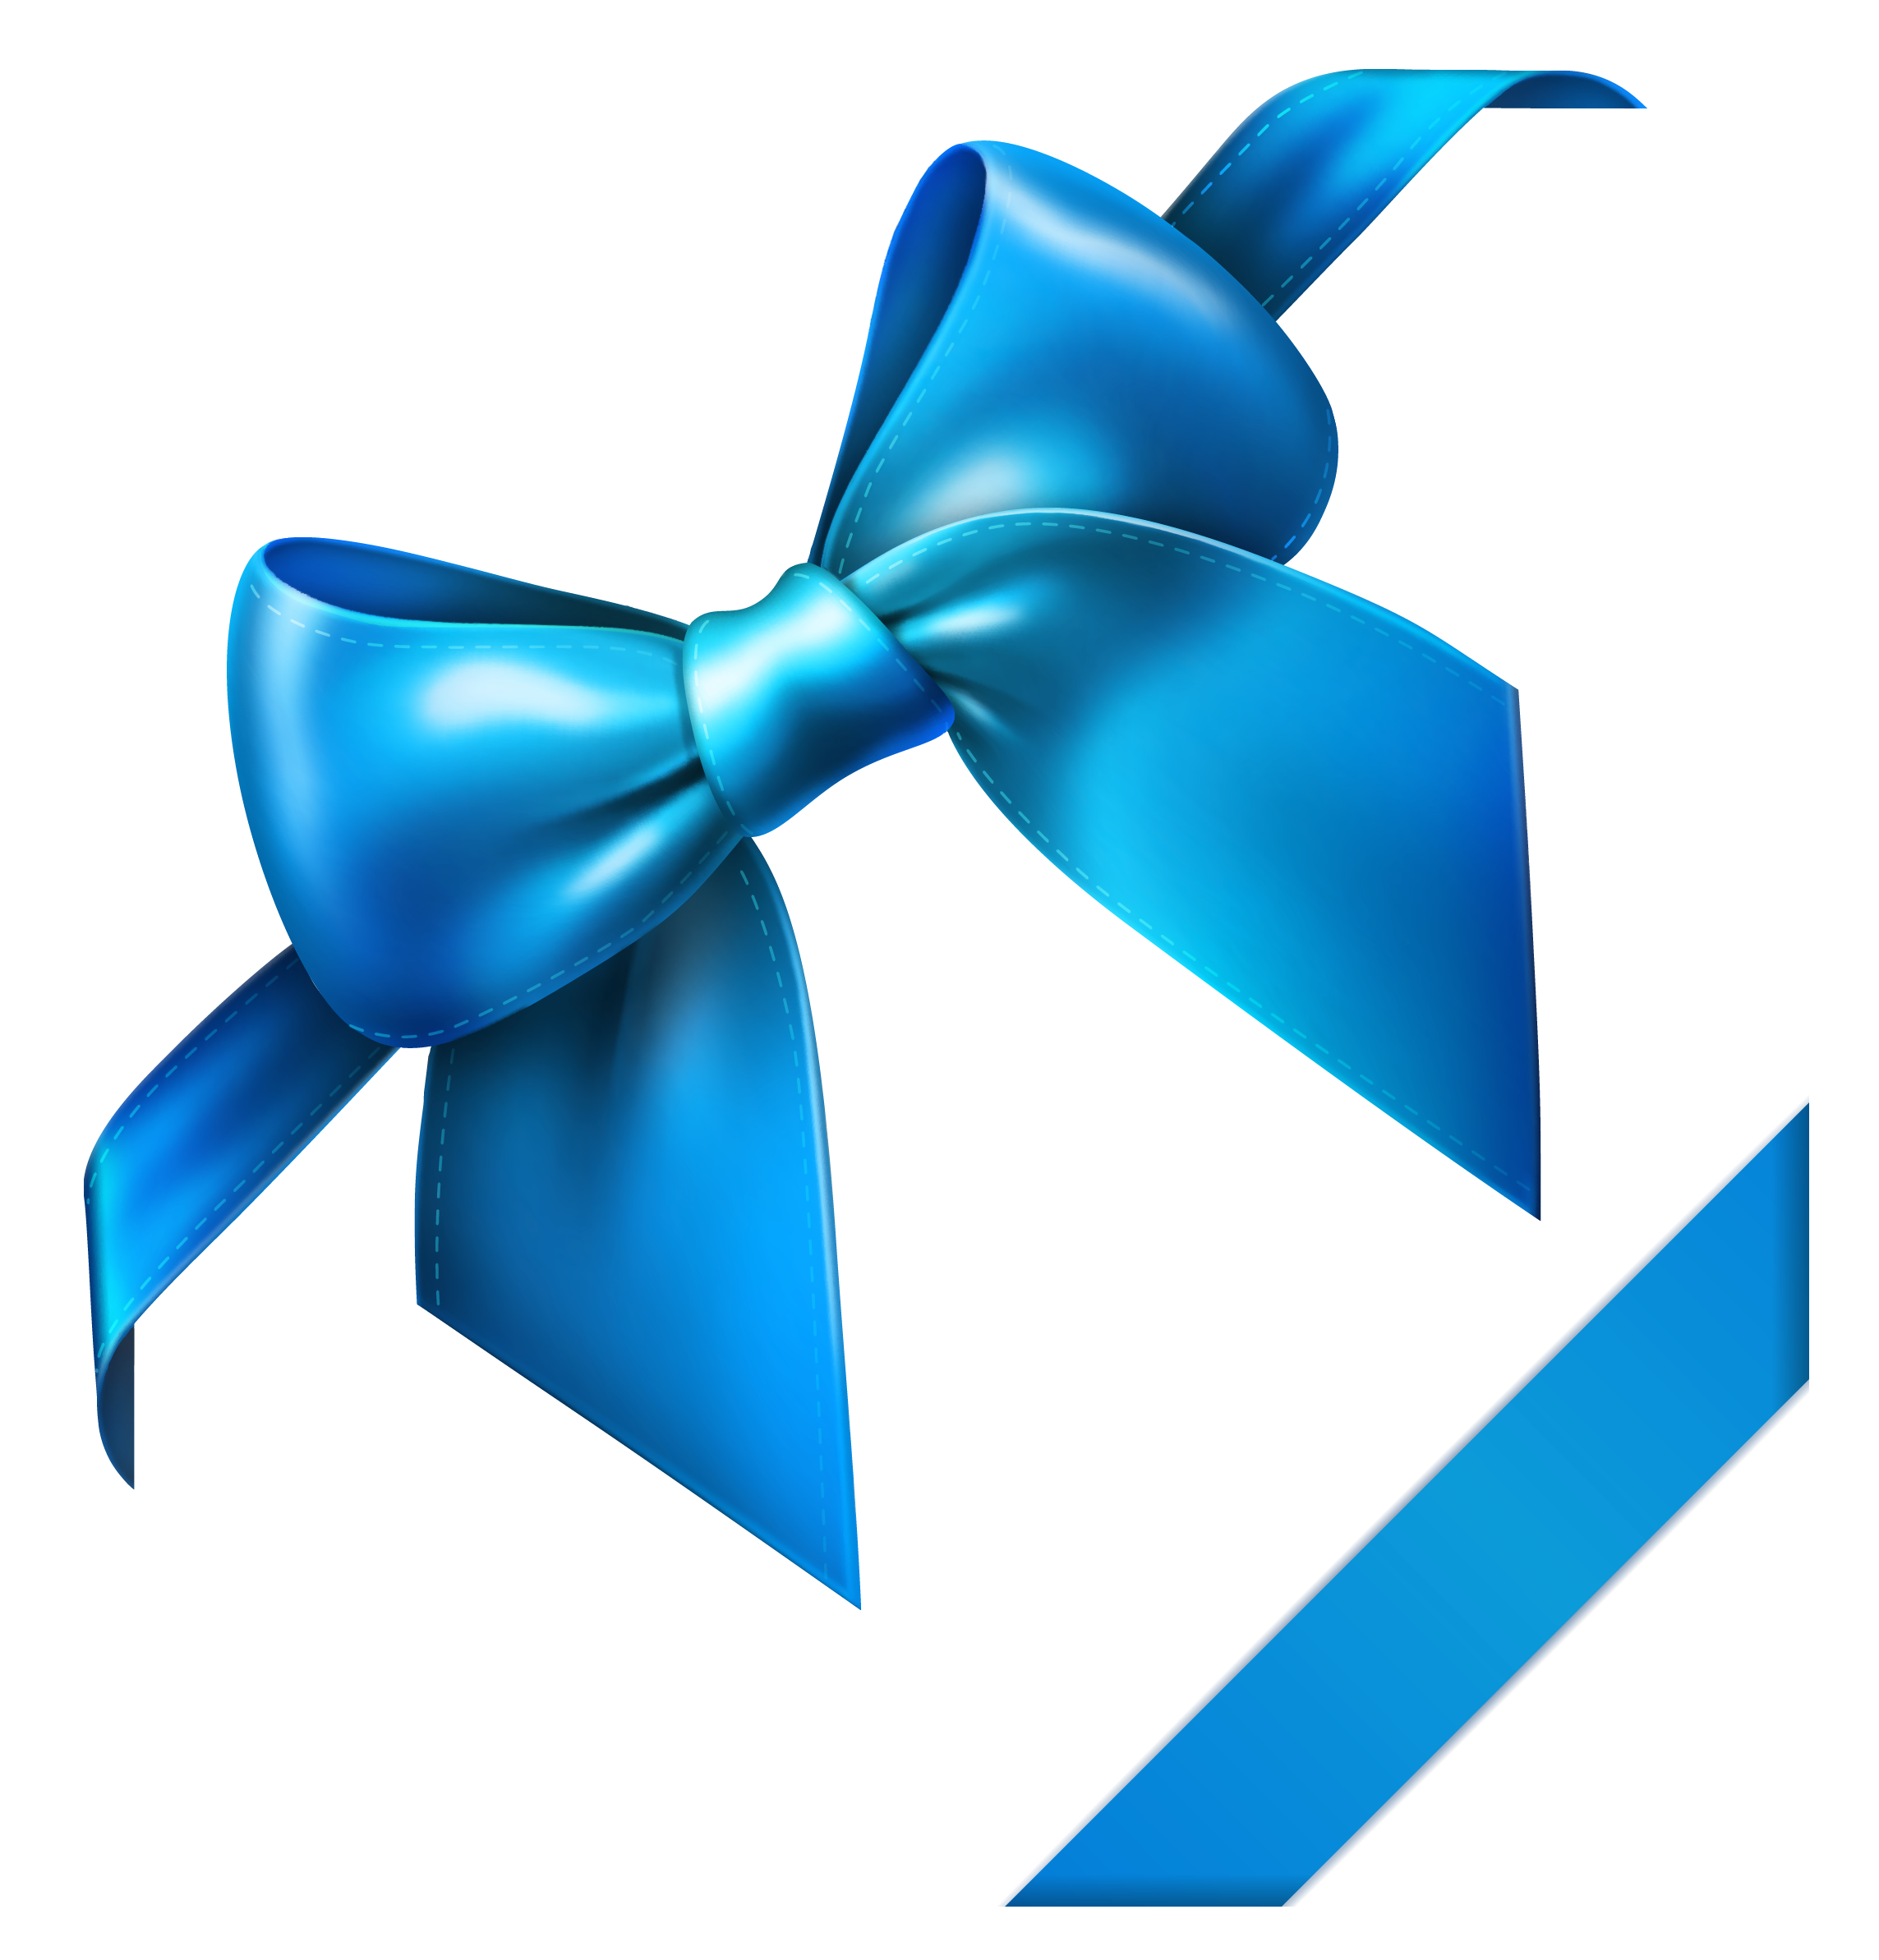 Bows clipart blue. Bow png picture gallery